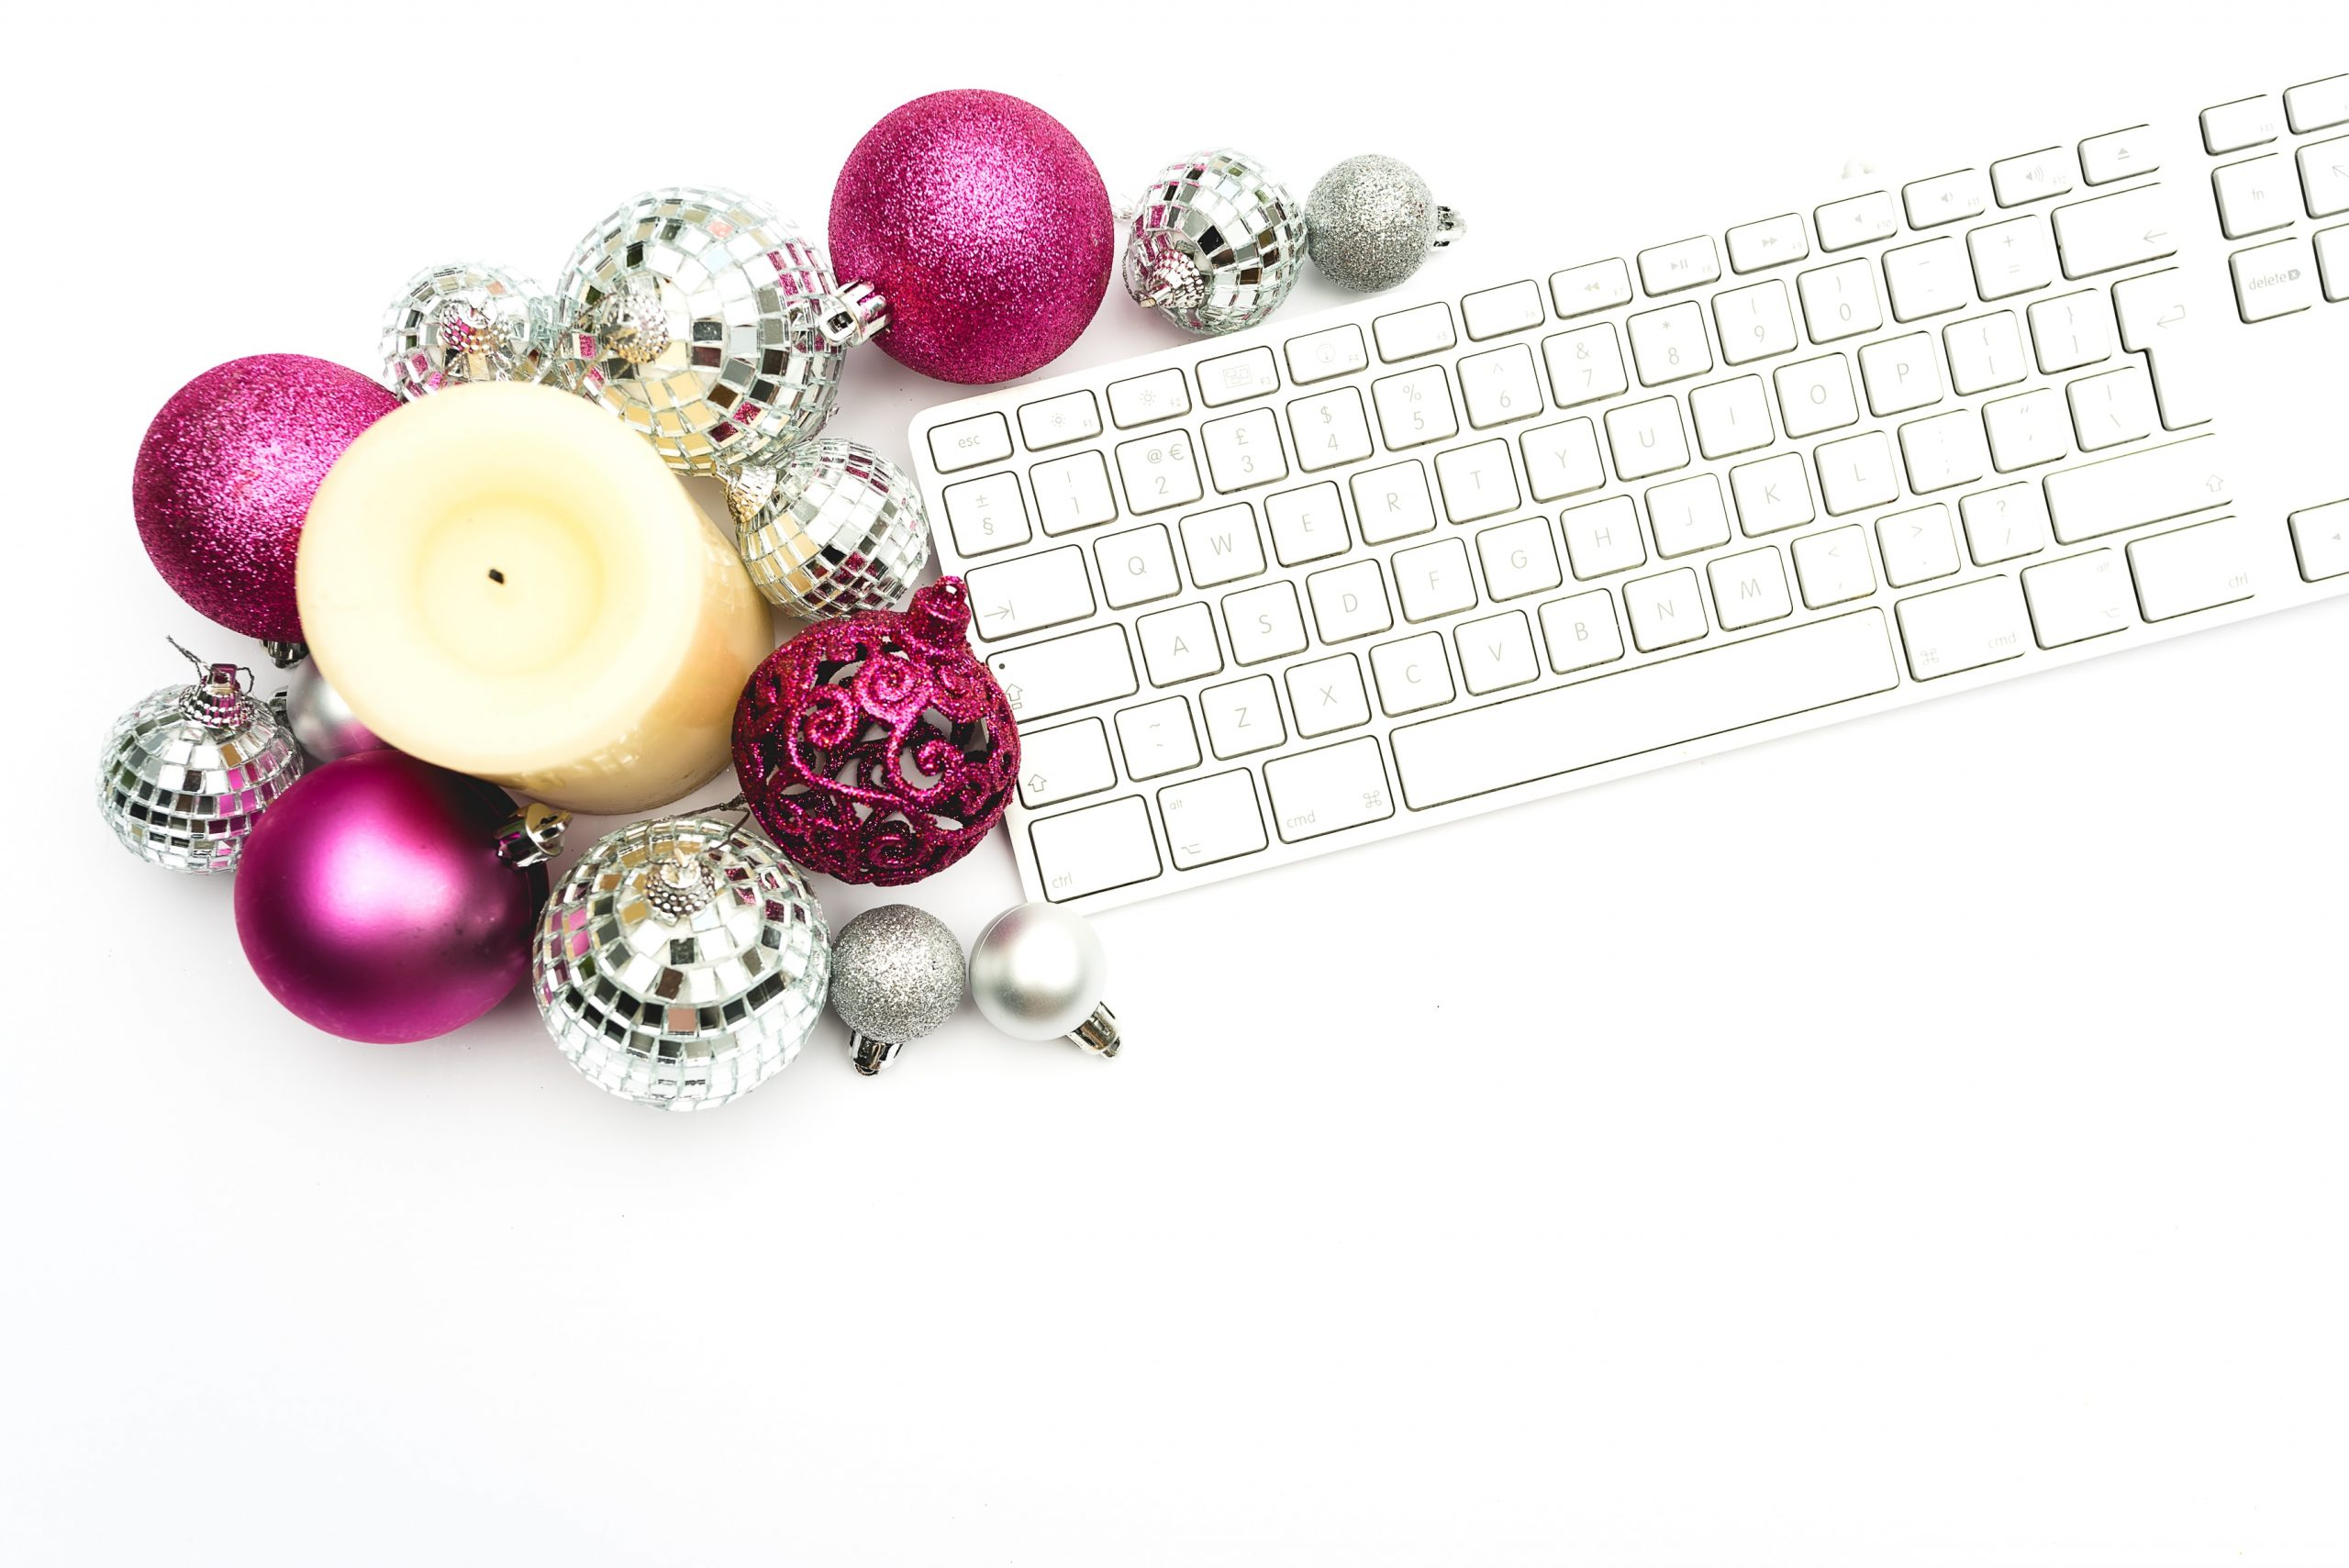 Virtual Christmas parties will qualify for tax exemption